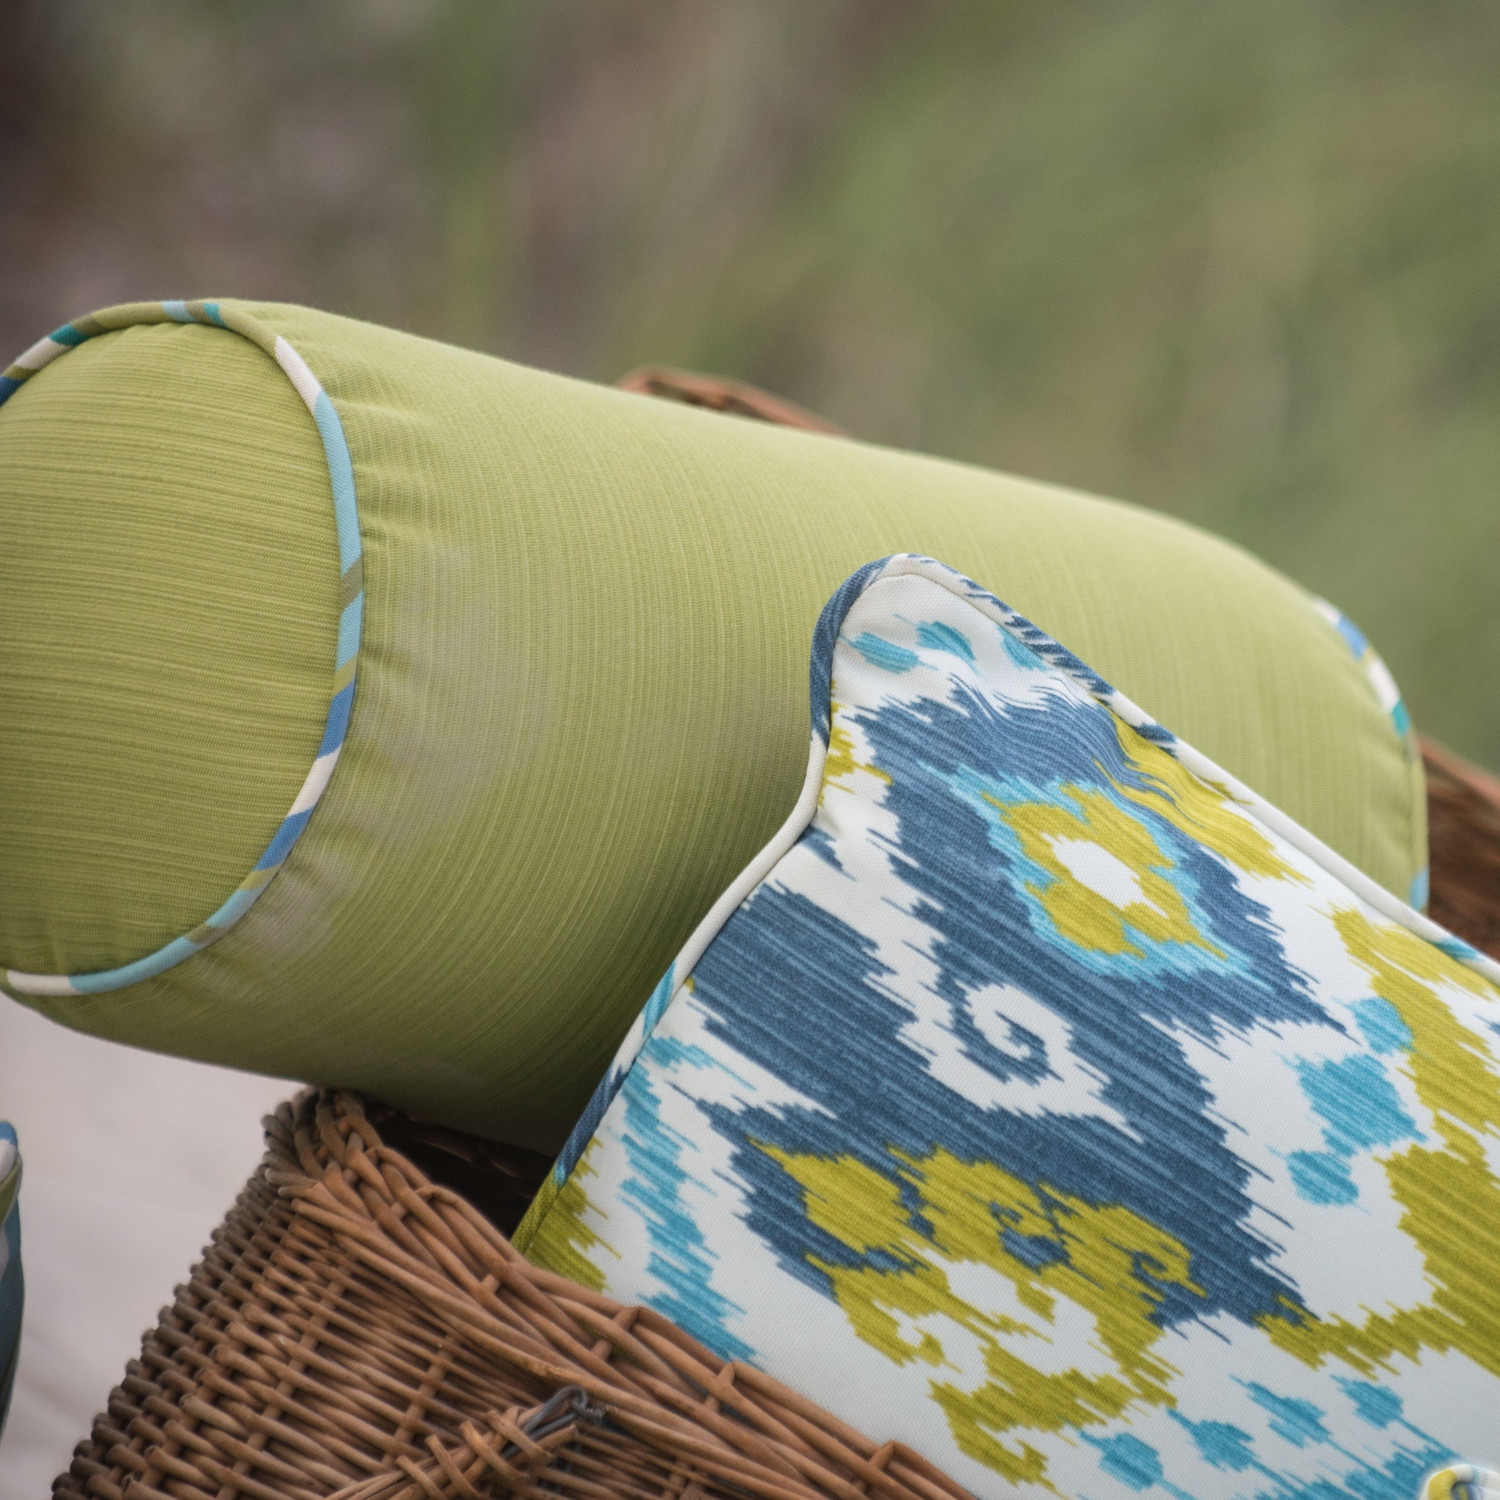 Outdoor Bolster Pillows Creating An Instant Decor To